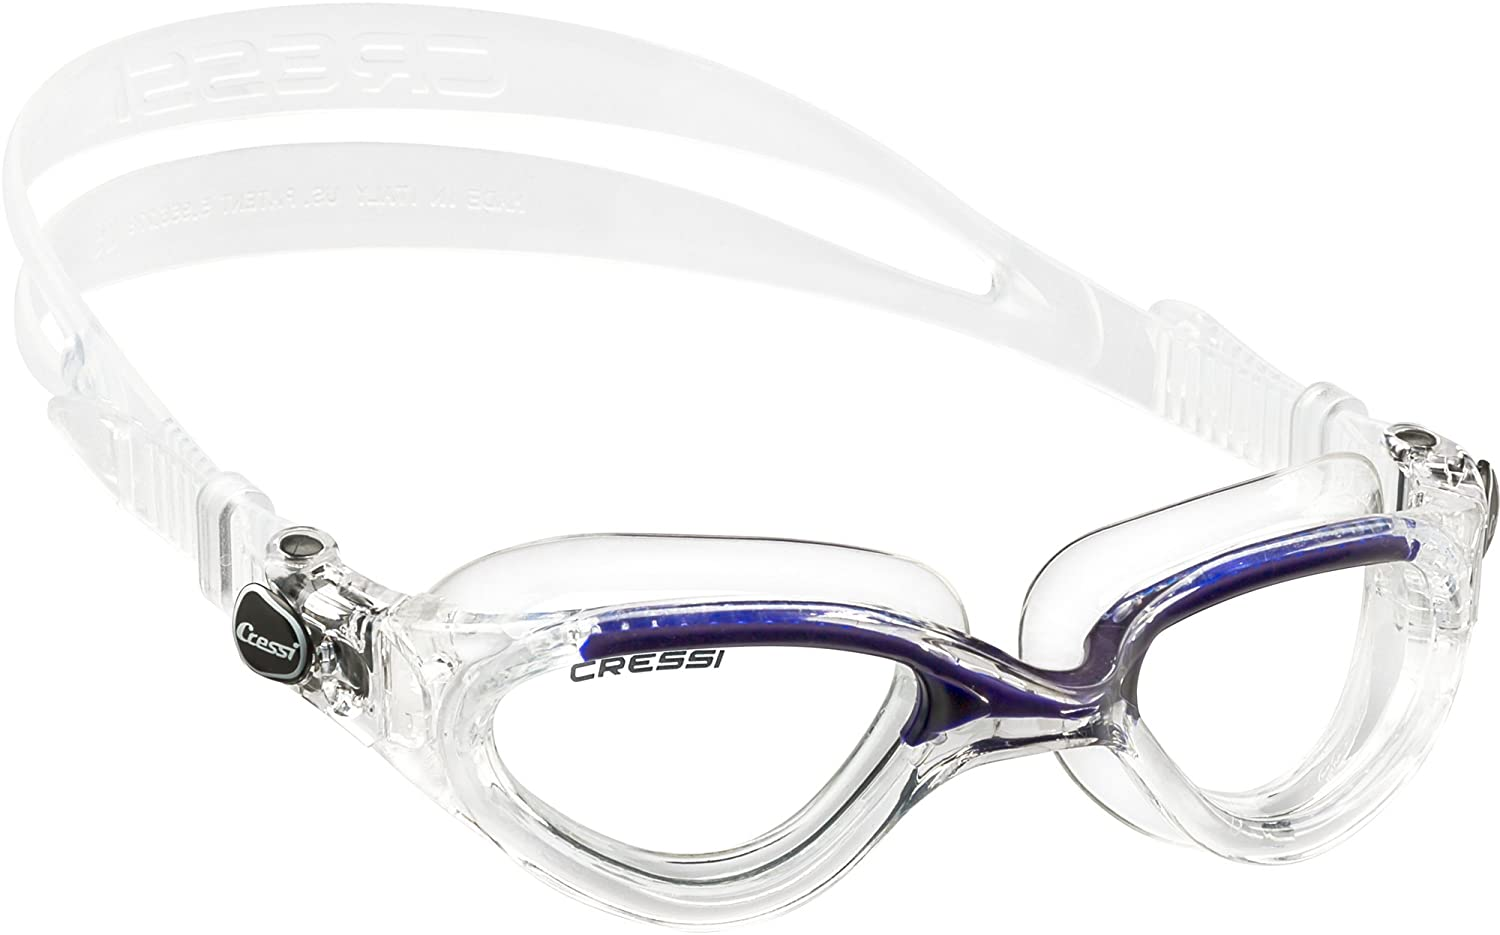 Easy Adjustable Buckles with Protective case Cressi DE202322 Flash Italian Made Ultra Clear Premium Swim Goggles